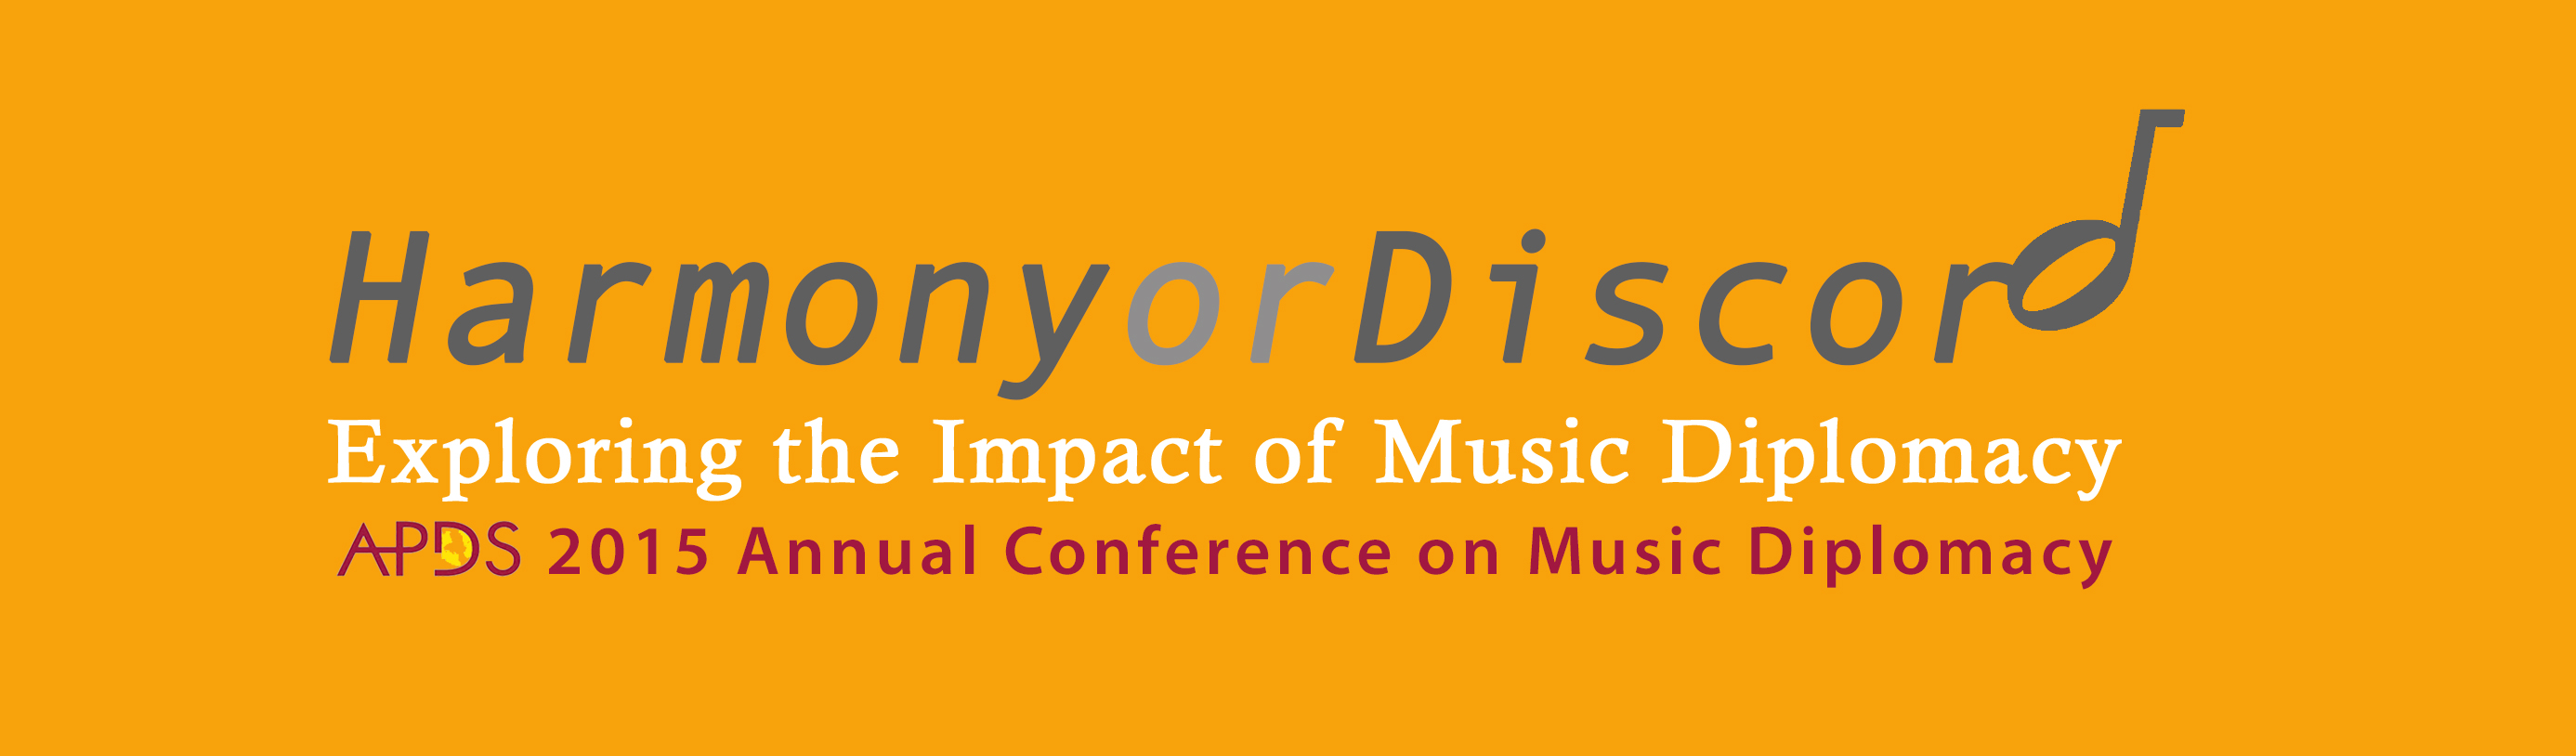 APDS 2015 Annual Conference on Music Diplomacy Harmony or Discord: Exploring the Impact of Music Diplomacy